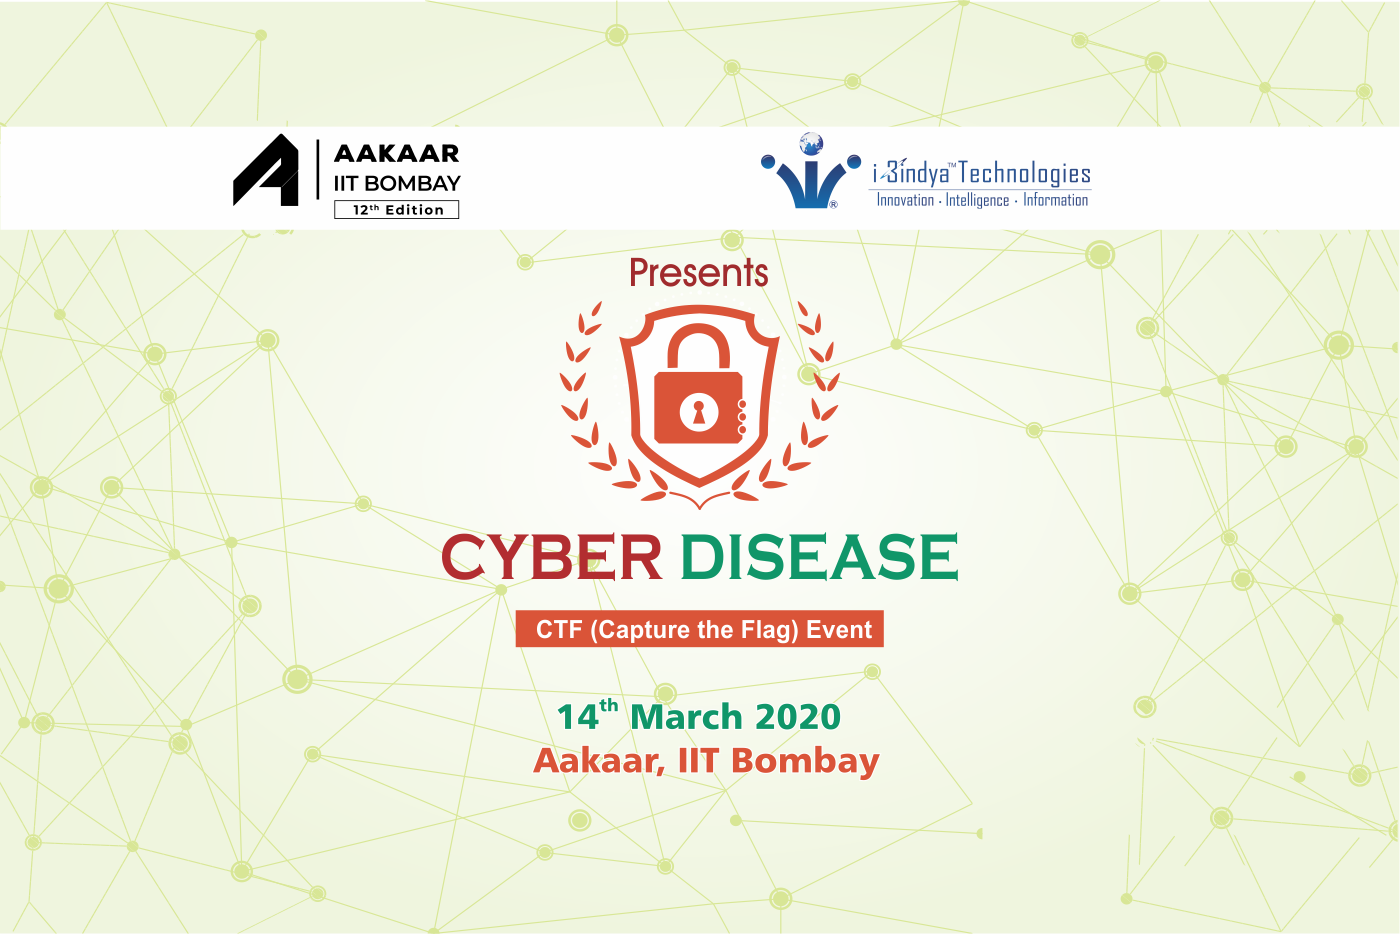 Cyber Disease 2020 - Ethical Hacking CTF Competition by i3indya at